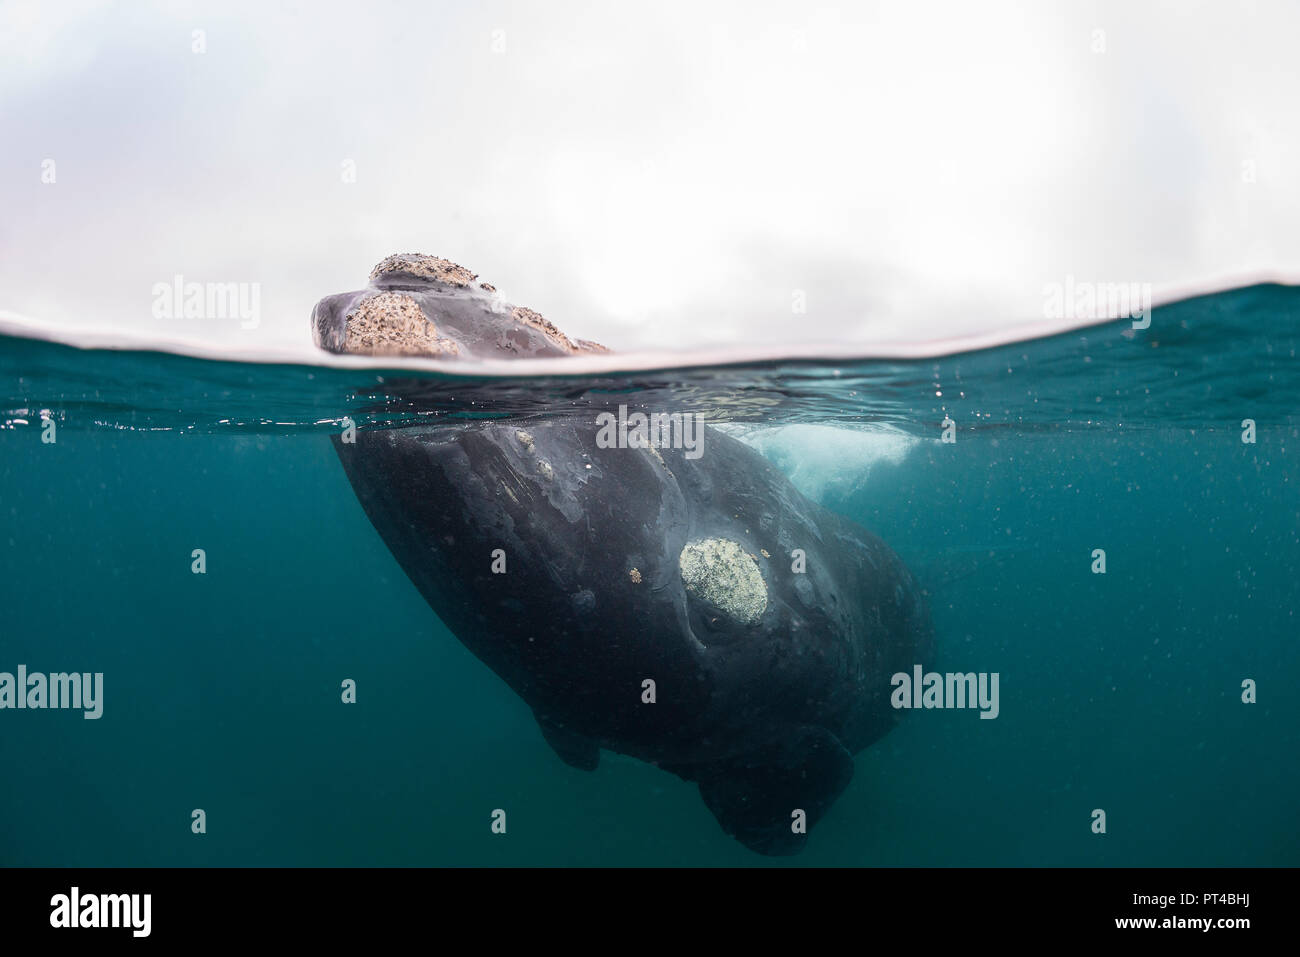 Southern right whale in shallow water, Valdes Peninsula. - Stock Image